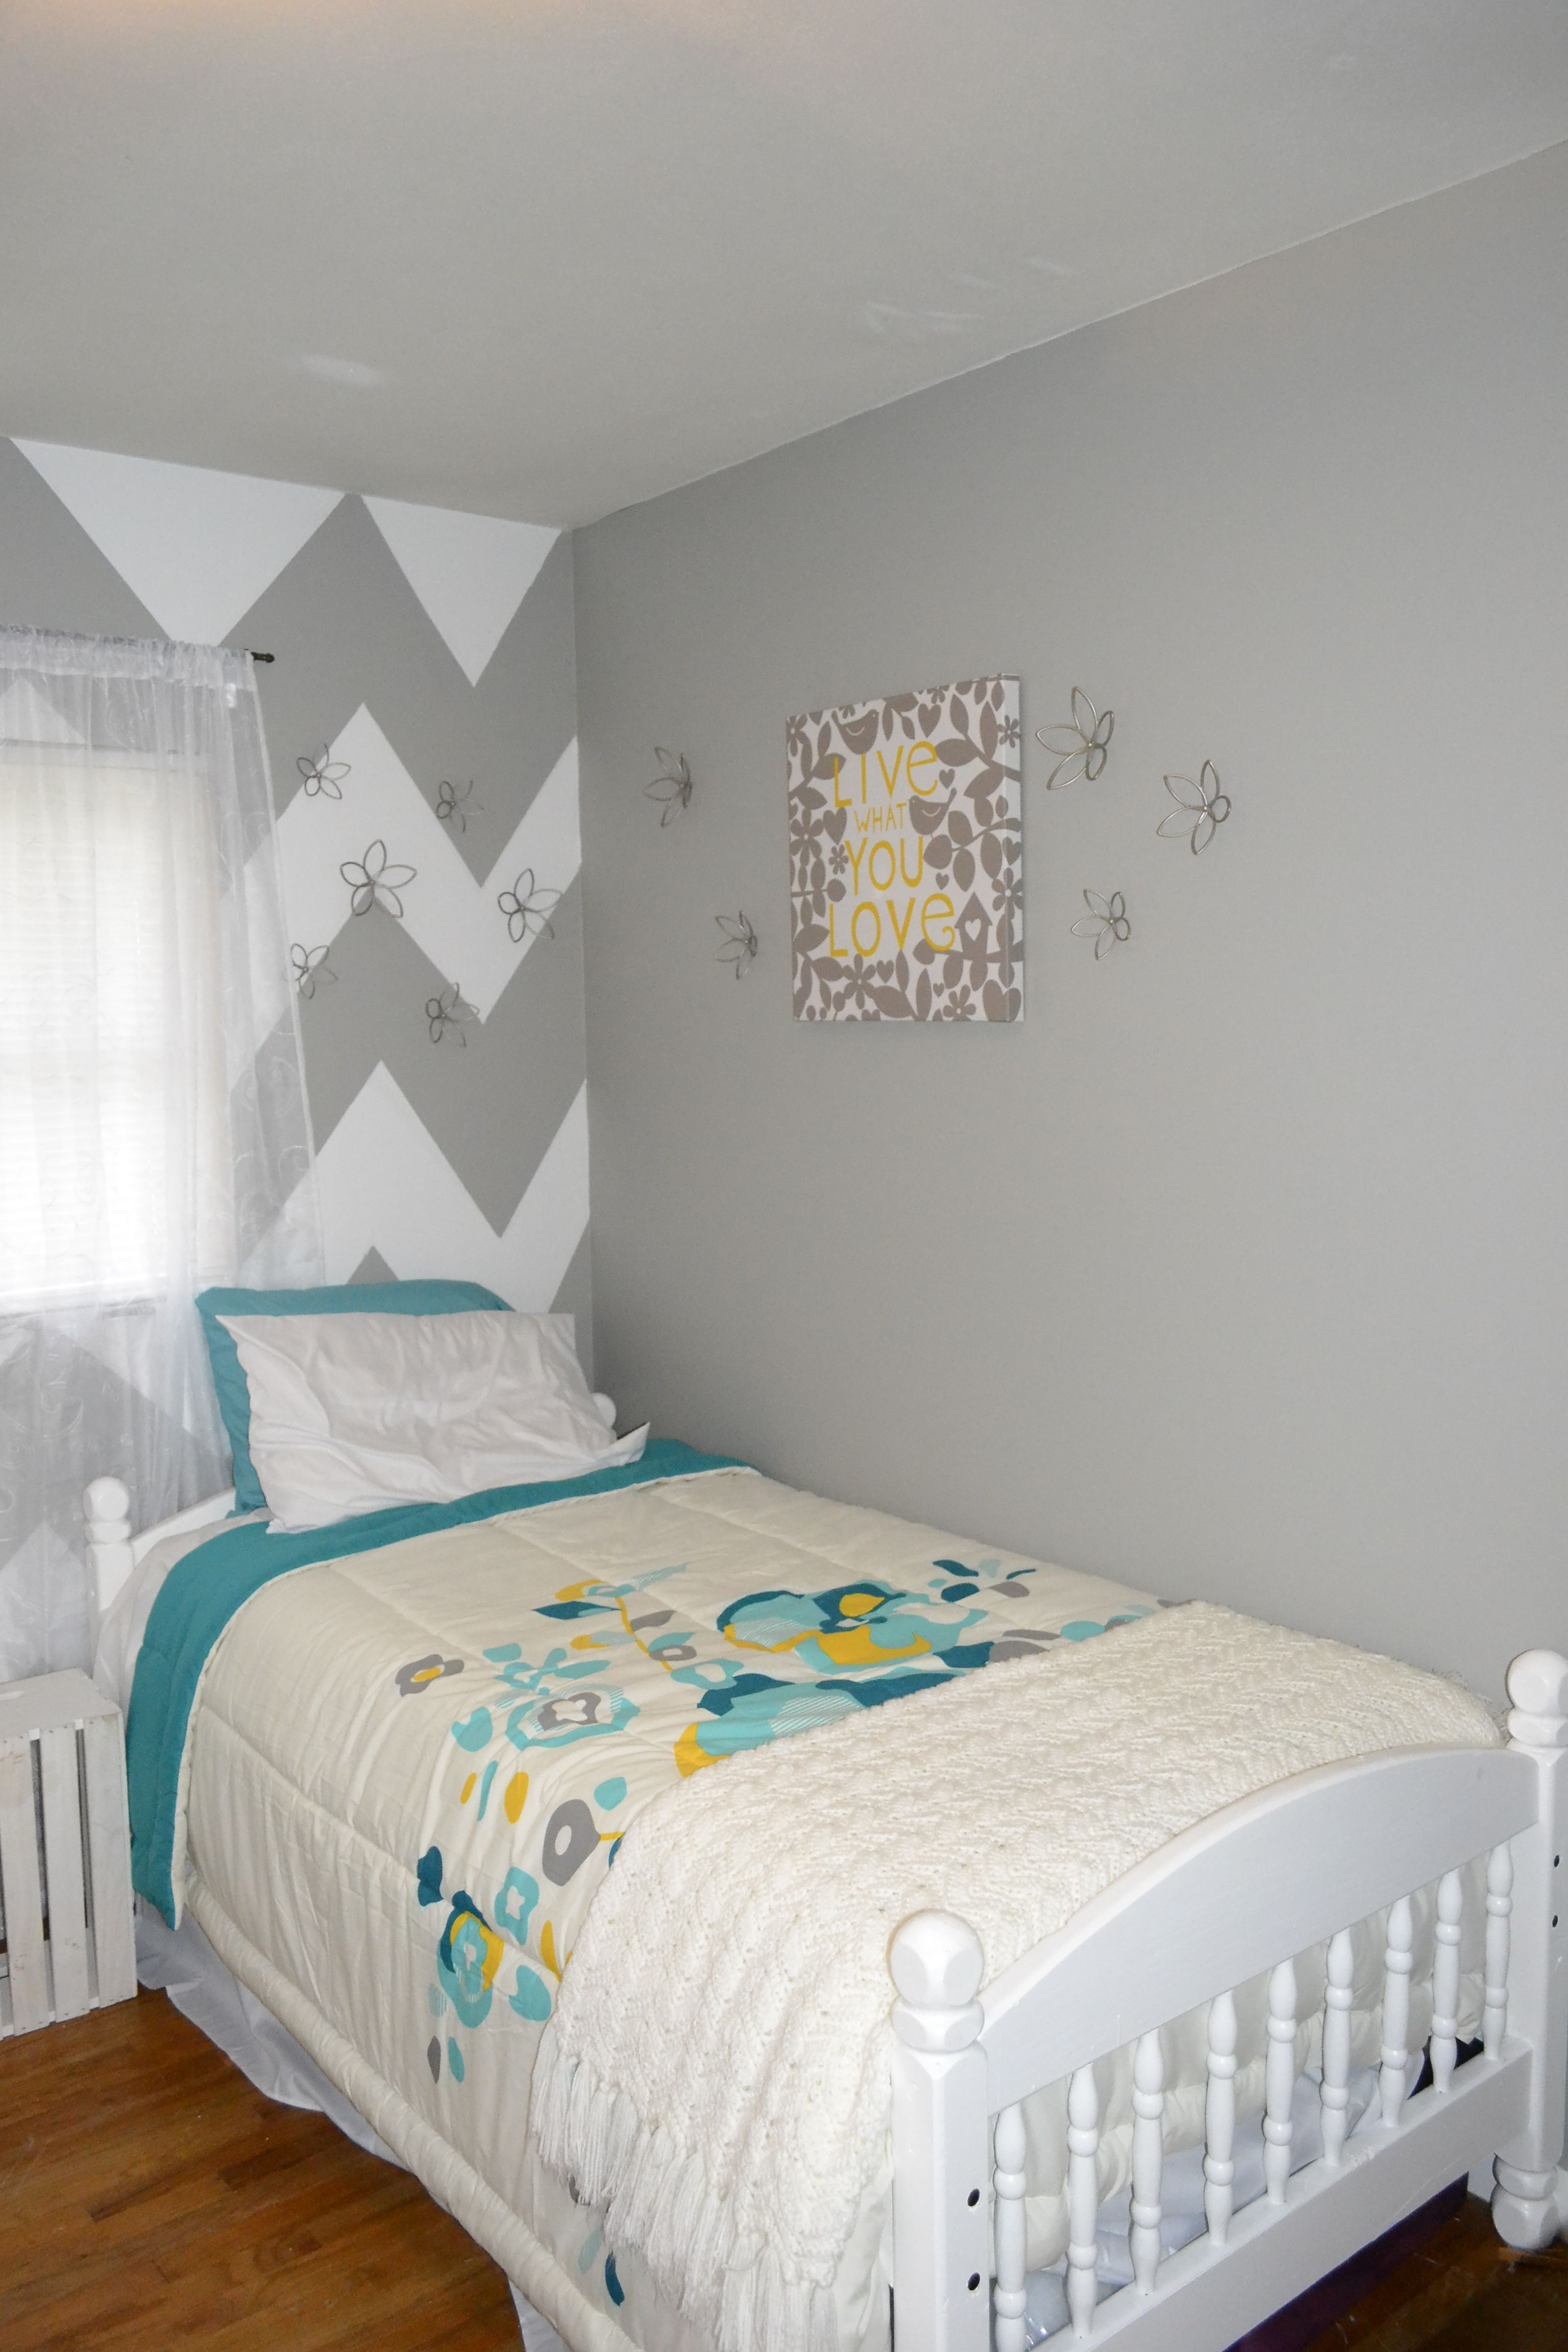 Best Kids Guest Room Sherwin Williams Ellie Gray My House 400 x 300